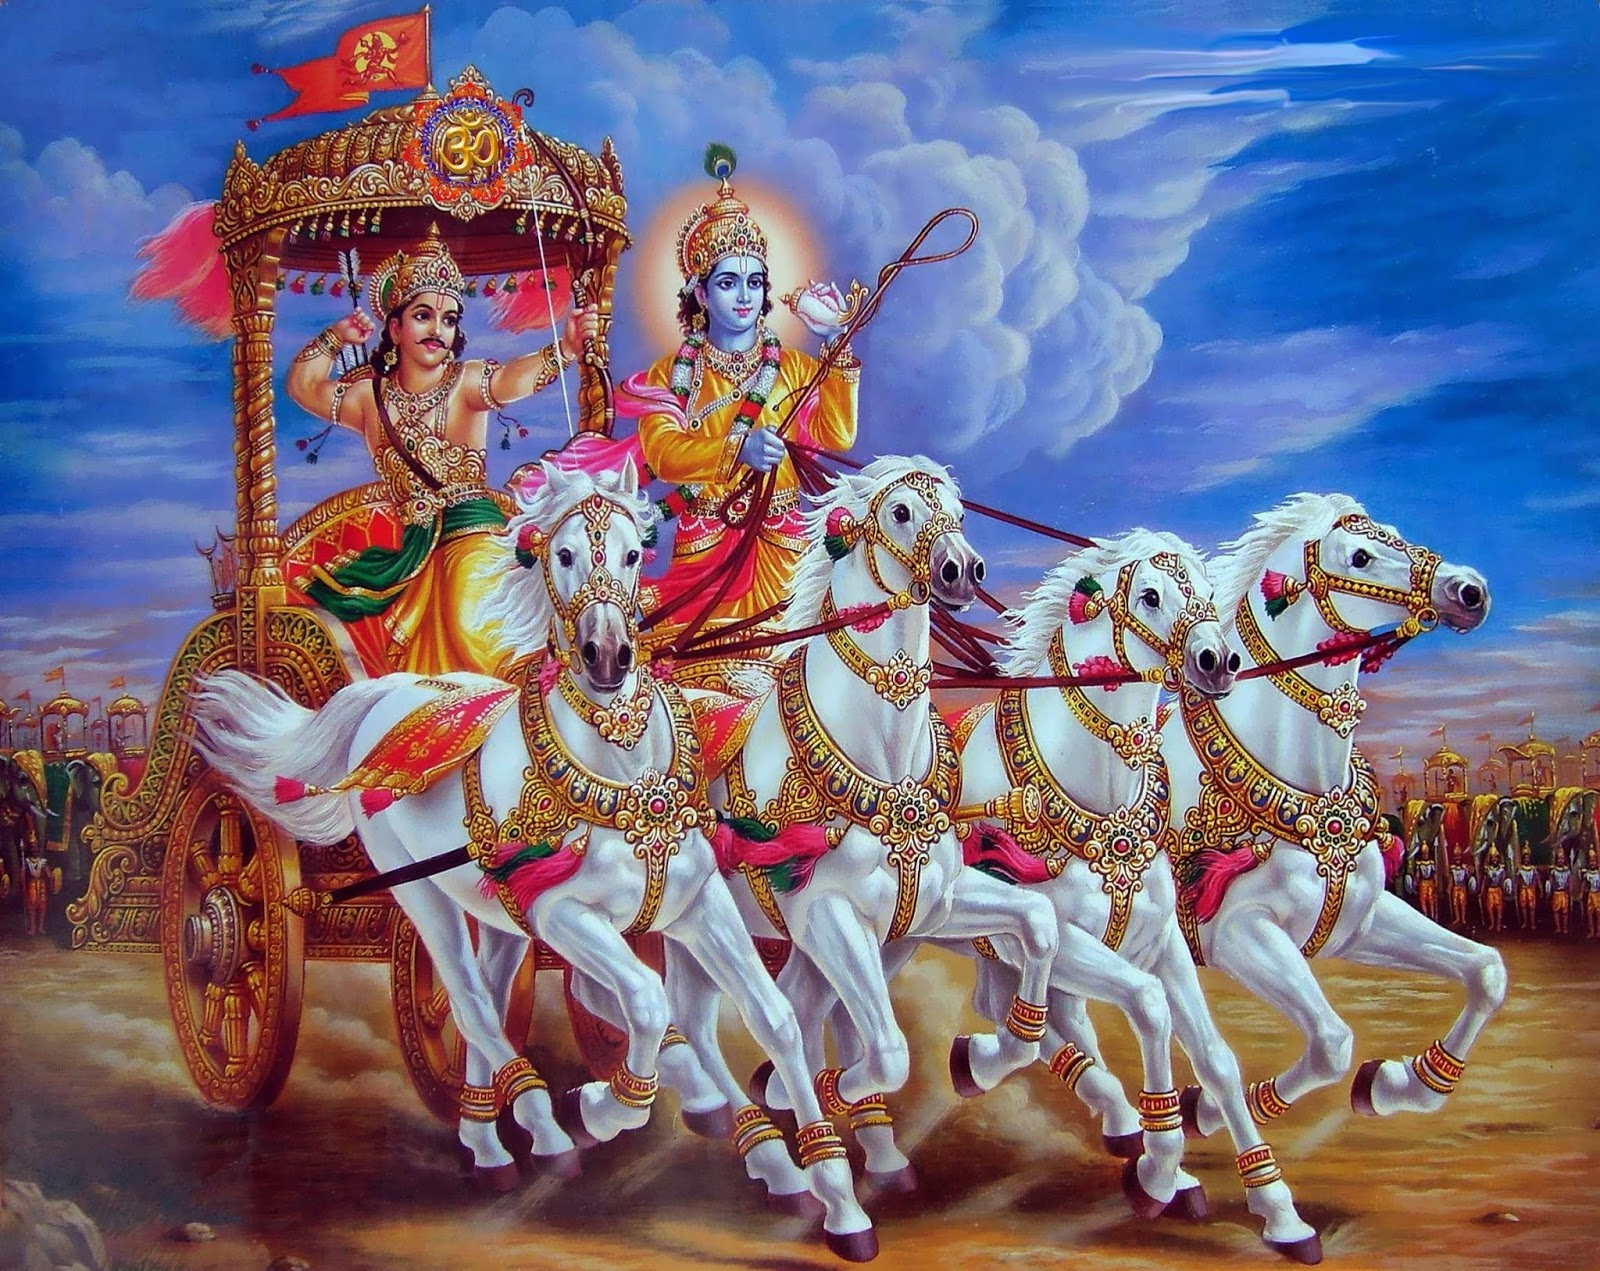 Krishna (Christ) and Arjuna (Human Soul) on the Battlefield of Life